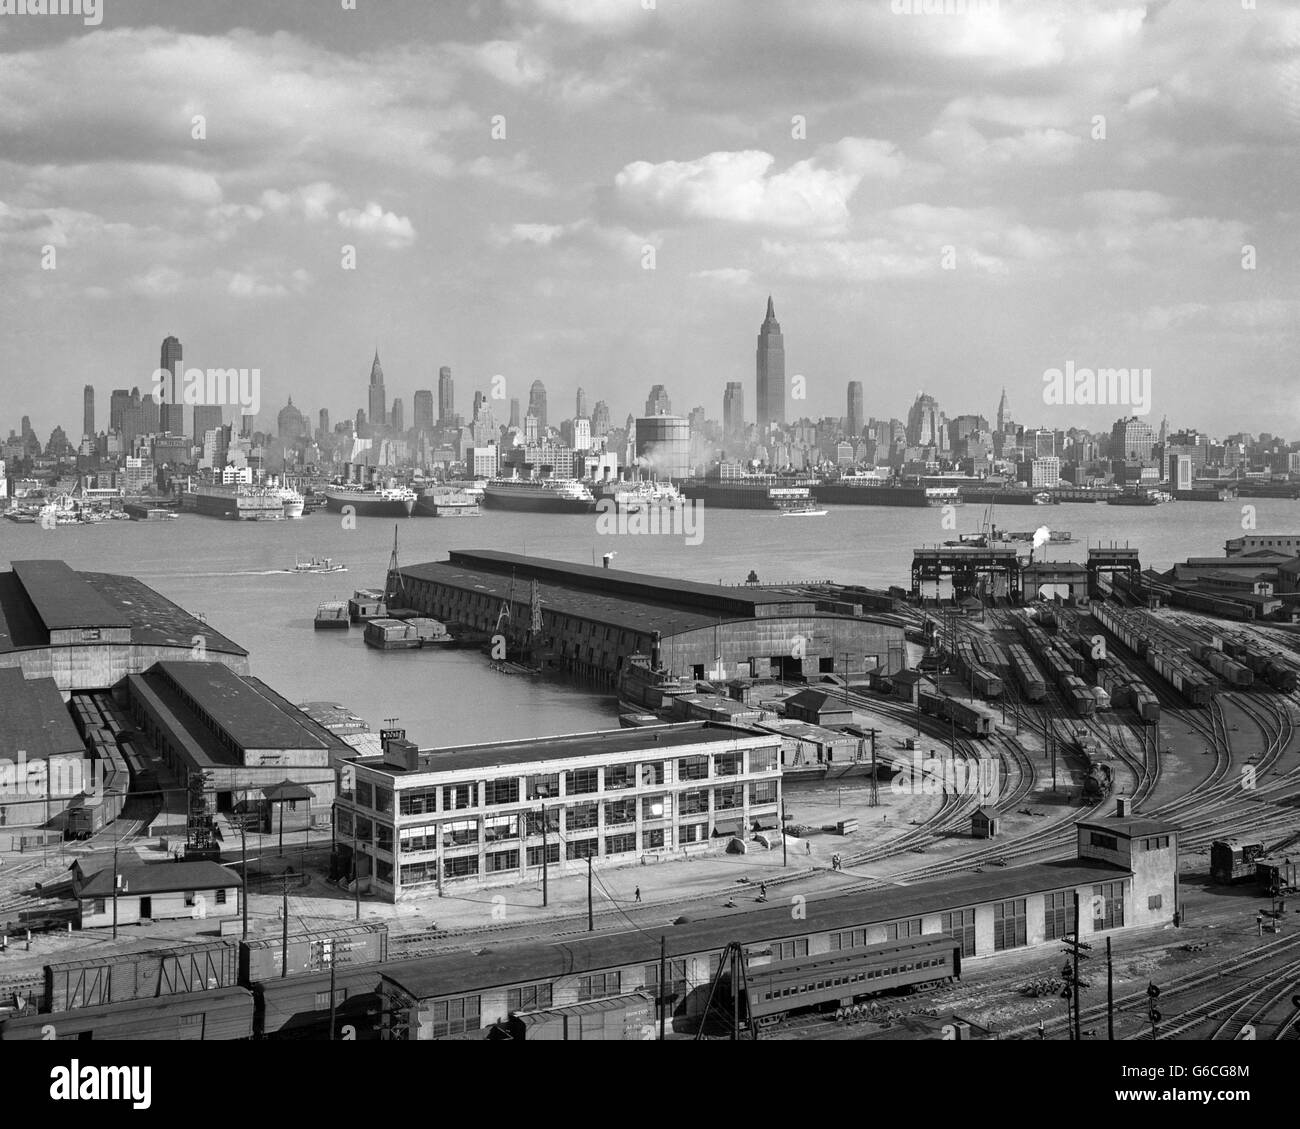 1930s MANHATTAN NYC SKYLINE ROCKEFELLER CENTER TO 14TH STREET AND OCEAN LINERS VIEW FROM WEEHAWKEN NJ USA Stock Photo